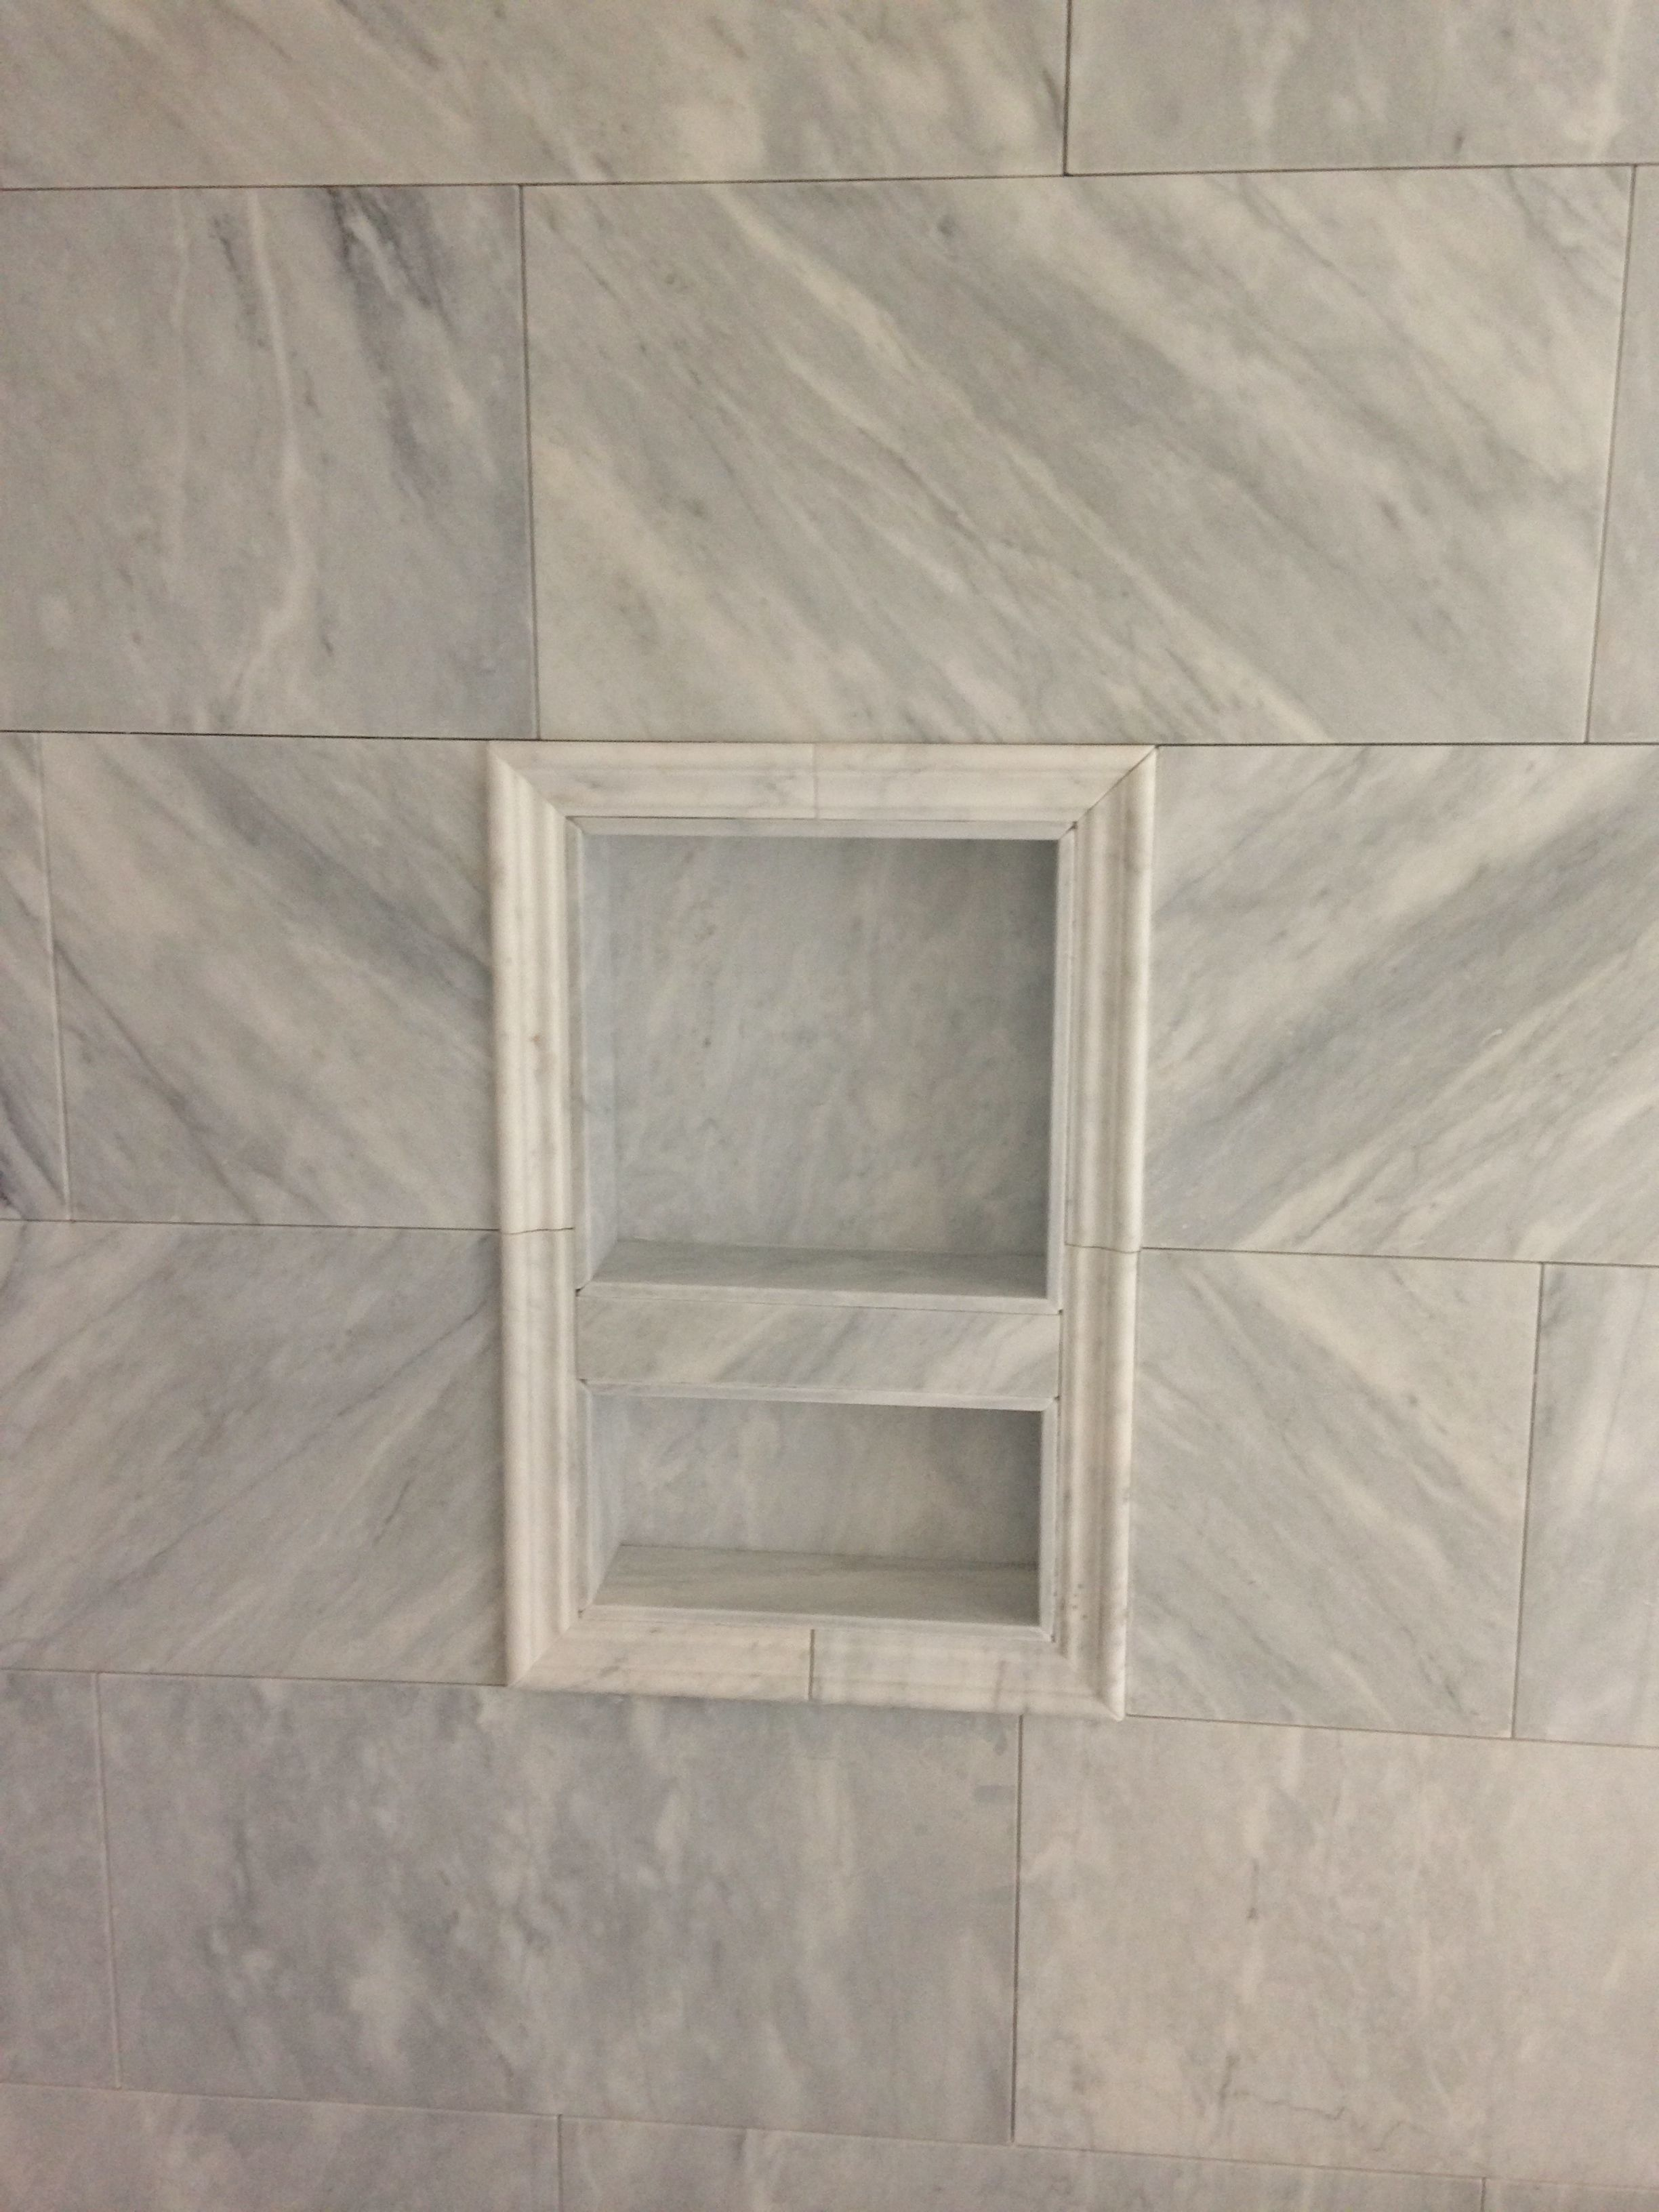 Carrara marble at Master shower walls with niche framed in Carrara